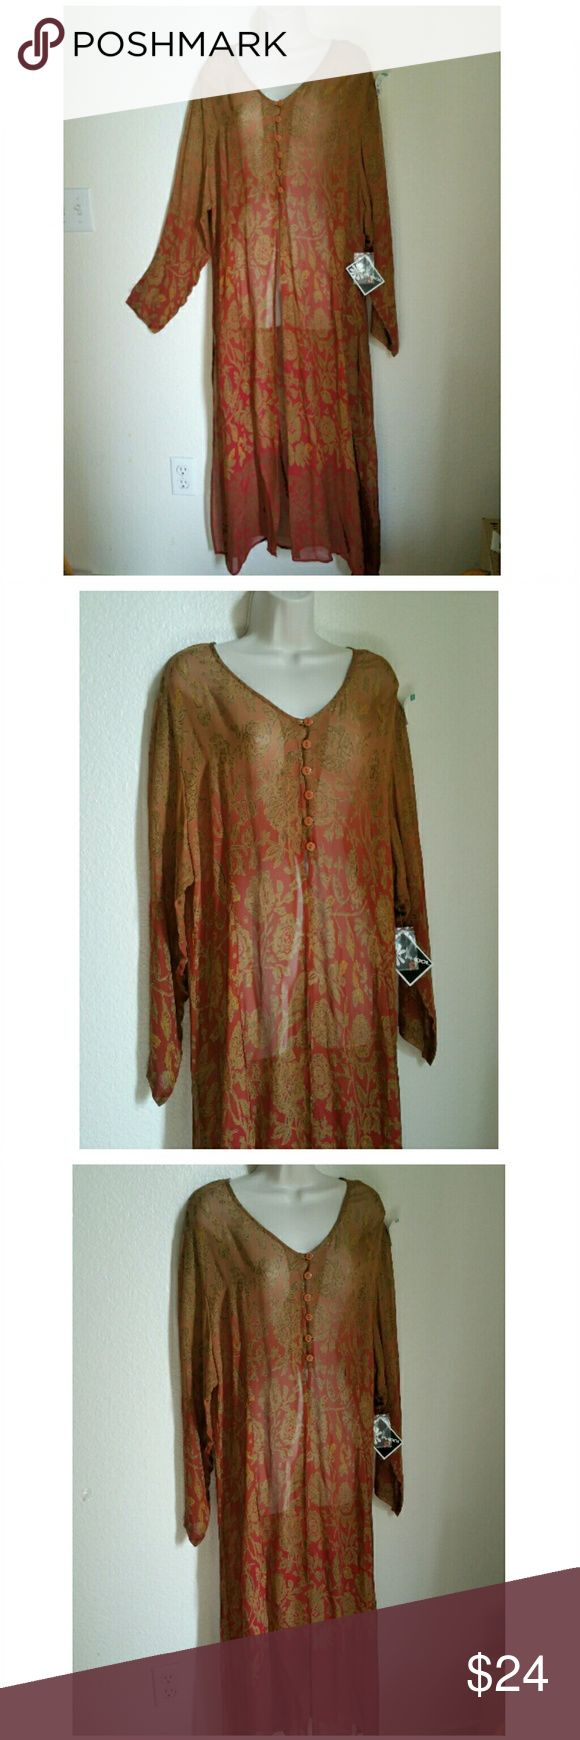 """Long Floral Tunic - NWT Absolutely new! This long semi-sheer floral tunic is a great accent piece for a neutral palette.  Dress up or casual, wear with jeggings and heels or jeans and boots, or festival wear. Phool, size 1X, 100% rayon, made in India. 22"""" pit to pit. Rust and coppery-brown color print.  Deep set sleeves. Five buttons at bust. V-neckine. Deep side splits. Long sleeves. New, with tag and extra button pouch. Phool Tops Tunics"""